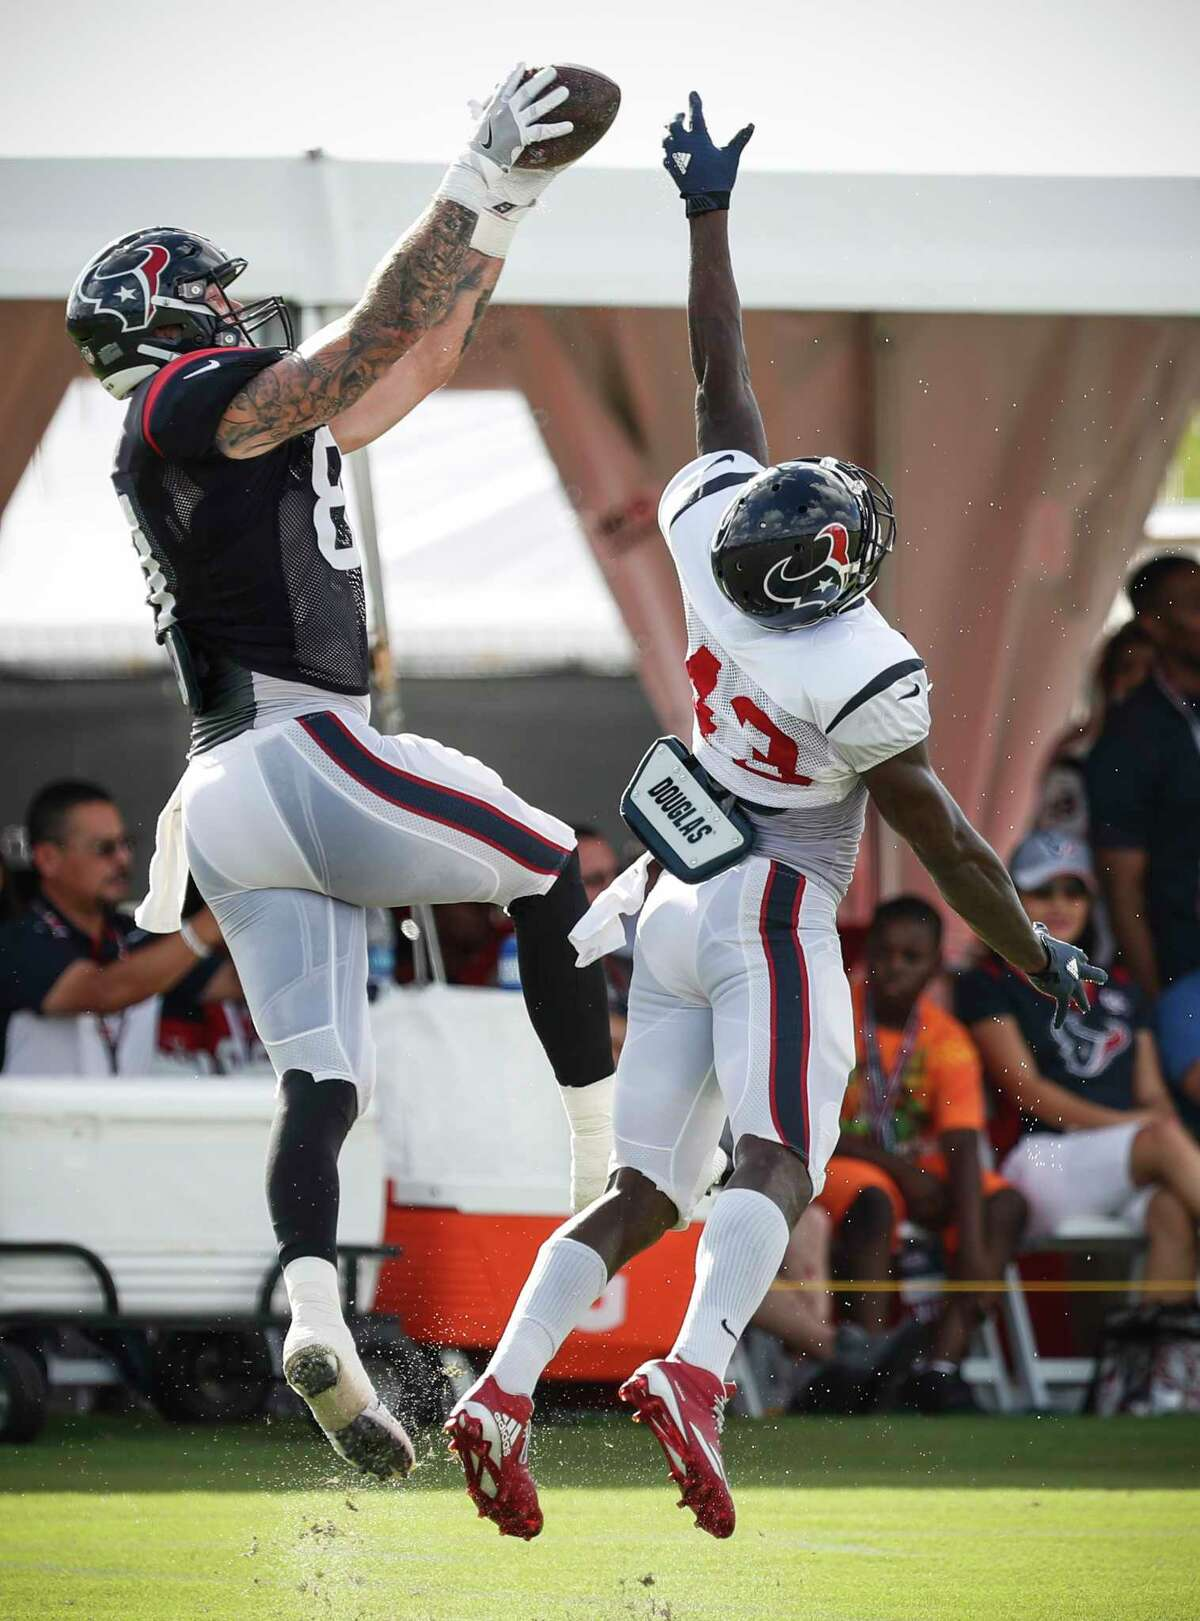 Houston Texans tight end Evan Baylis (81) goes up over strong safety Corey Moore (43) to make a catch during training camp at The Methodist Training Center on Tuesday, Aug. 22, 2017, in Houston.